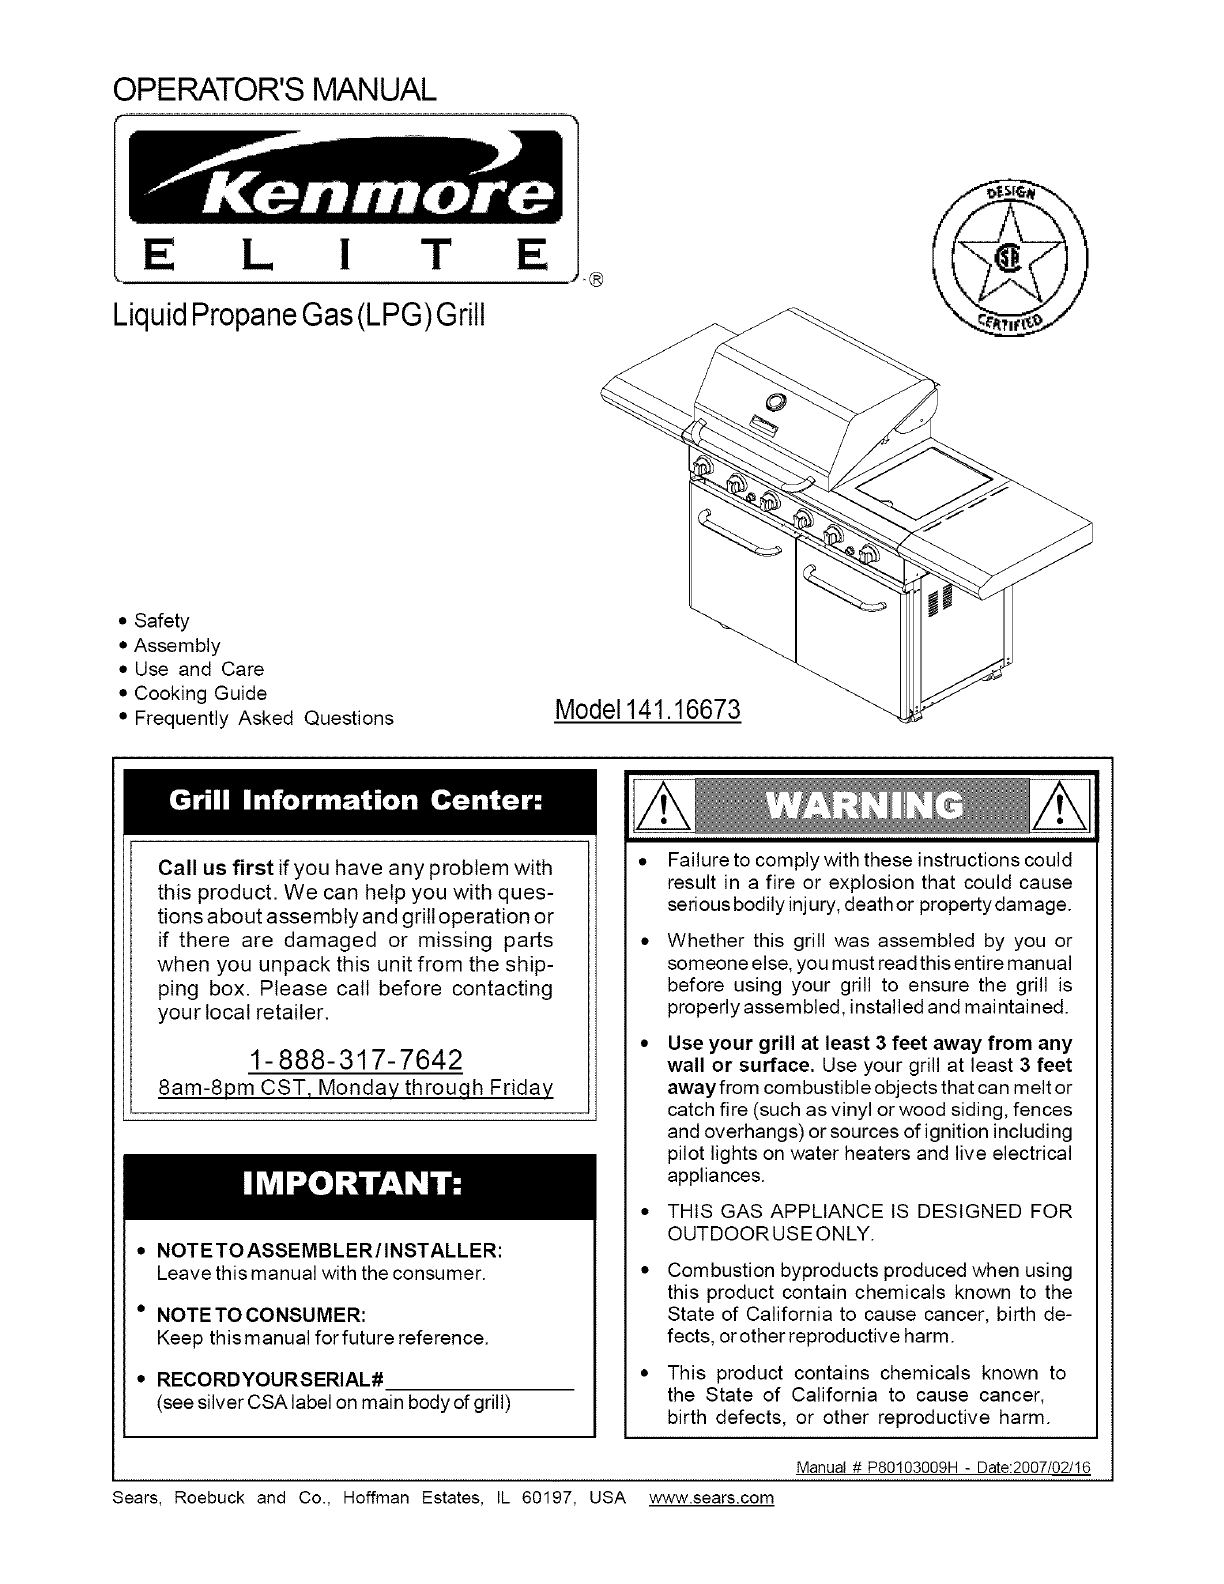 Kenmore Elite 14116673 User Manual GAS GRILL Manuals And ... on kenmore elite manual, kenmore elite dryer schematic, kenmore elite thermostat, kenmore elite clutch, kenmore elite specifications, kenmore elite hose, kenmore elite fuel gauge, kenmore elite serial number, kenmore elite control panel, kenmore elite timer, kenmore elite speaker, kenmore refrigerator diagram, kenmore elite repair, kenmore elite compressor, kenmore elite dimensions, kenmore elite disassembly,